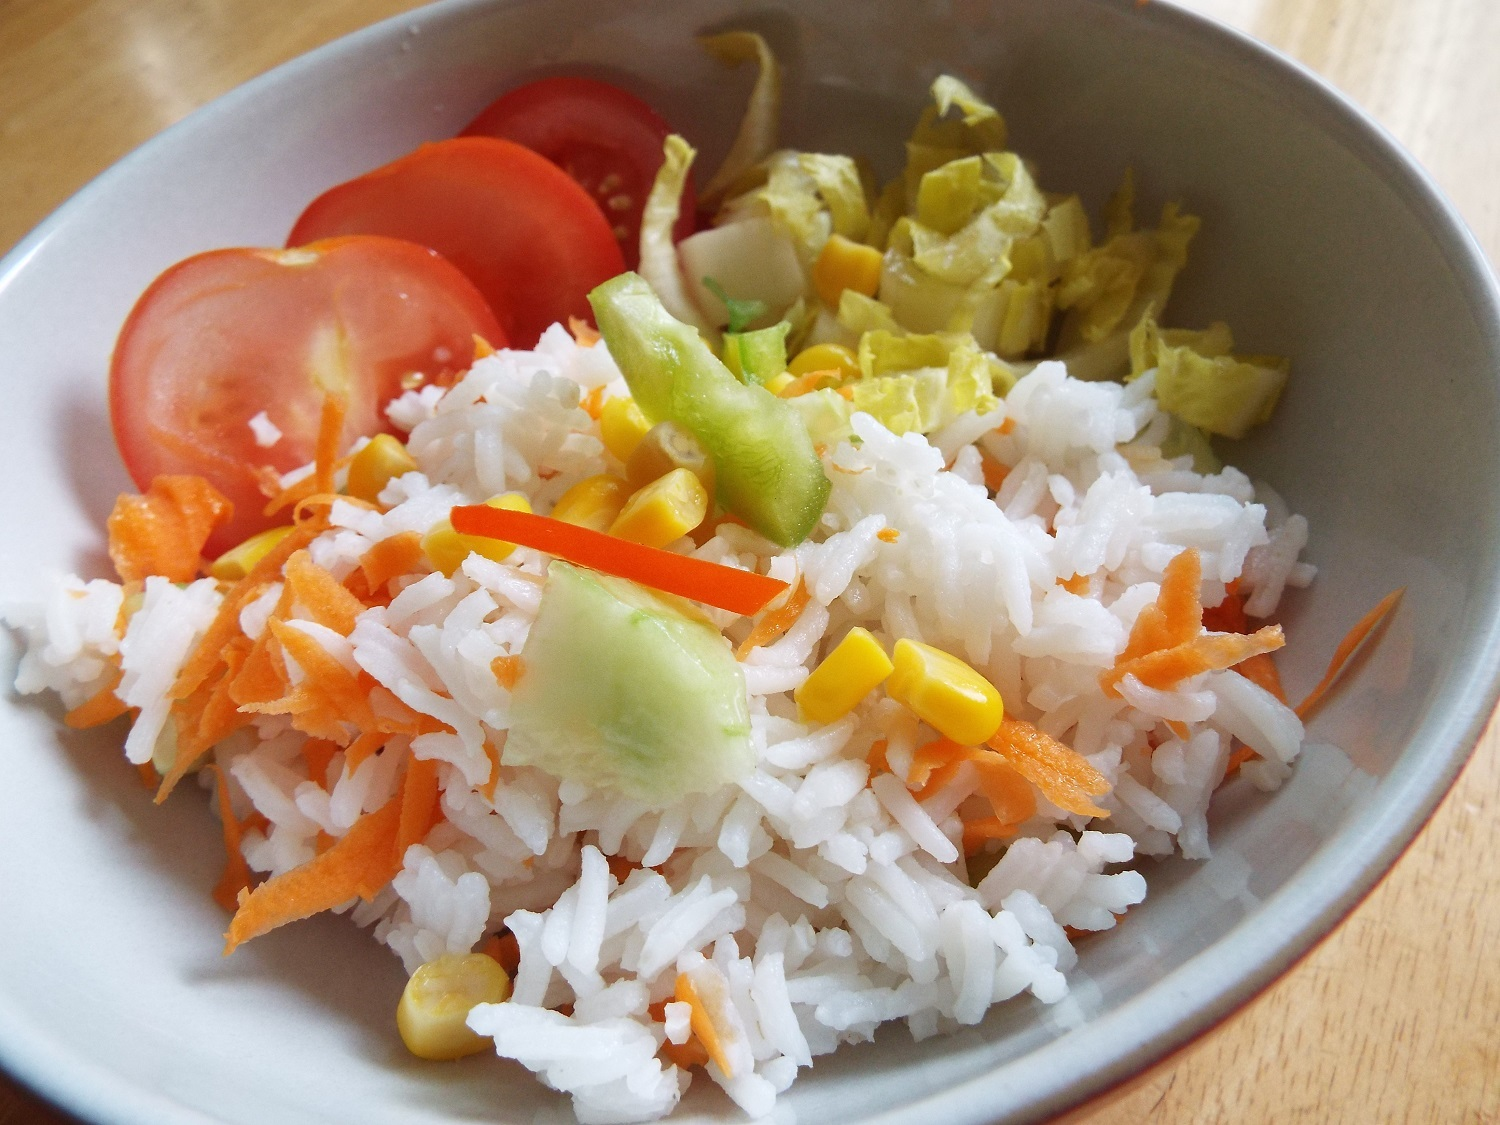 Rice Salad - This is such a simple 'side'. It's cold cooked rice (white or wholegrain) with salad ingredients such as tomato, cucumber, canned sweetcorn, carrot and lettuce or chicory - whatever's in season, available and affordable, really.Serve with a simple dressing of olive or vegetable oil, and lemon juice or vinegar, mixed together with seasoning.Vegan; vegetarian; gluten-free; health-aware